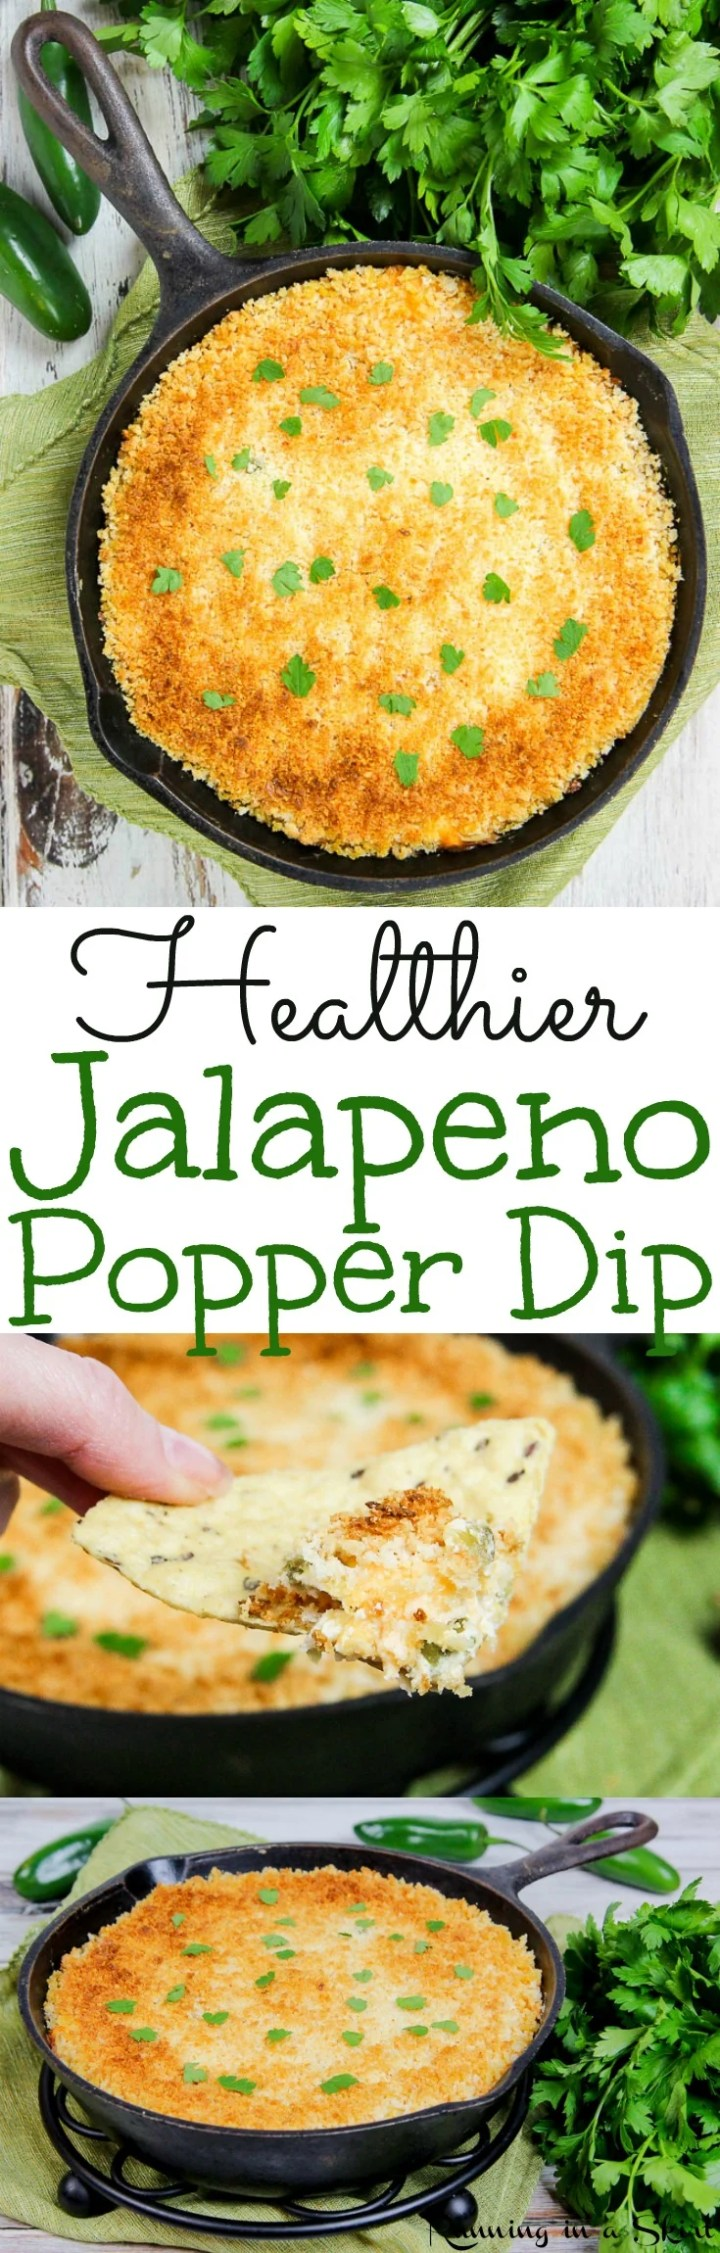 Easy Healthy Jalapeno Popper Dip recipe - with greek yogurt and with panko! The perfect appetizers for your Super Bowl party. Also uses cream cheeses and cheddar cheese - not too spicy. A great vegetarian Superbowl food! Gluten free too. / Running in a Skirt via @juliewunder